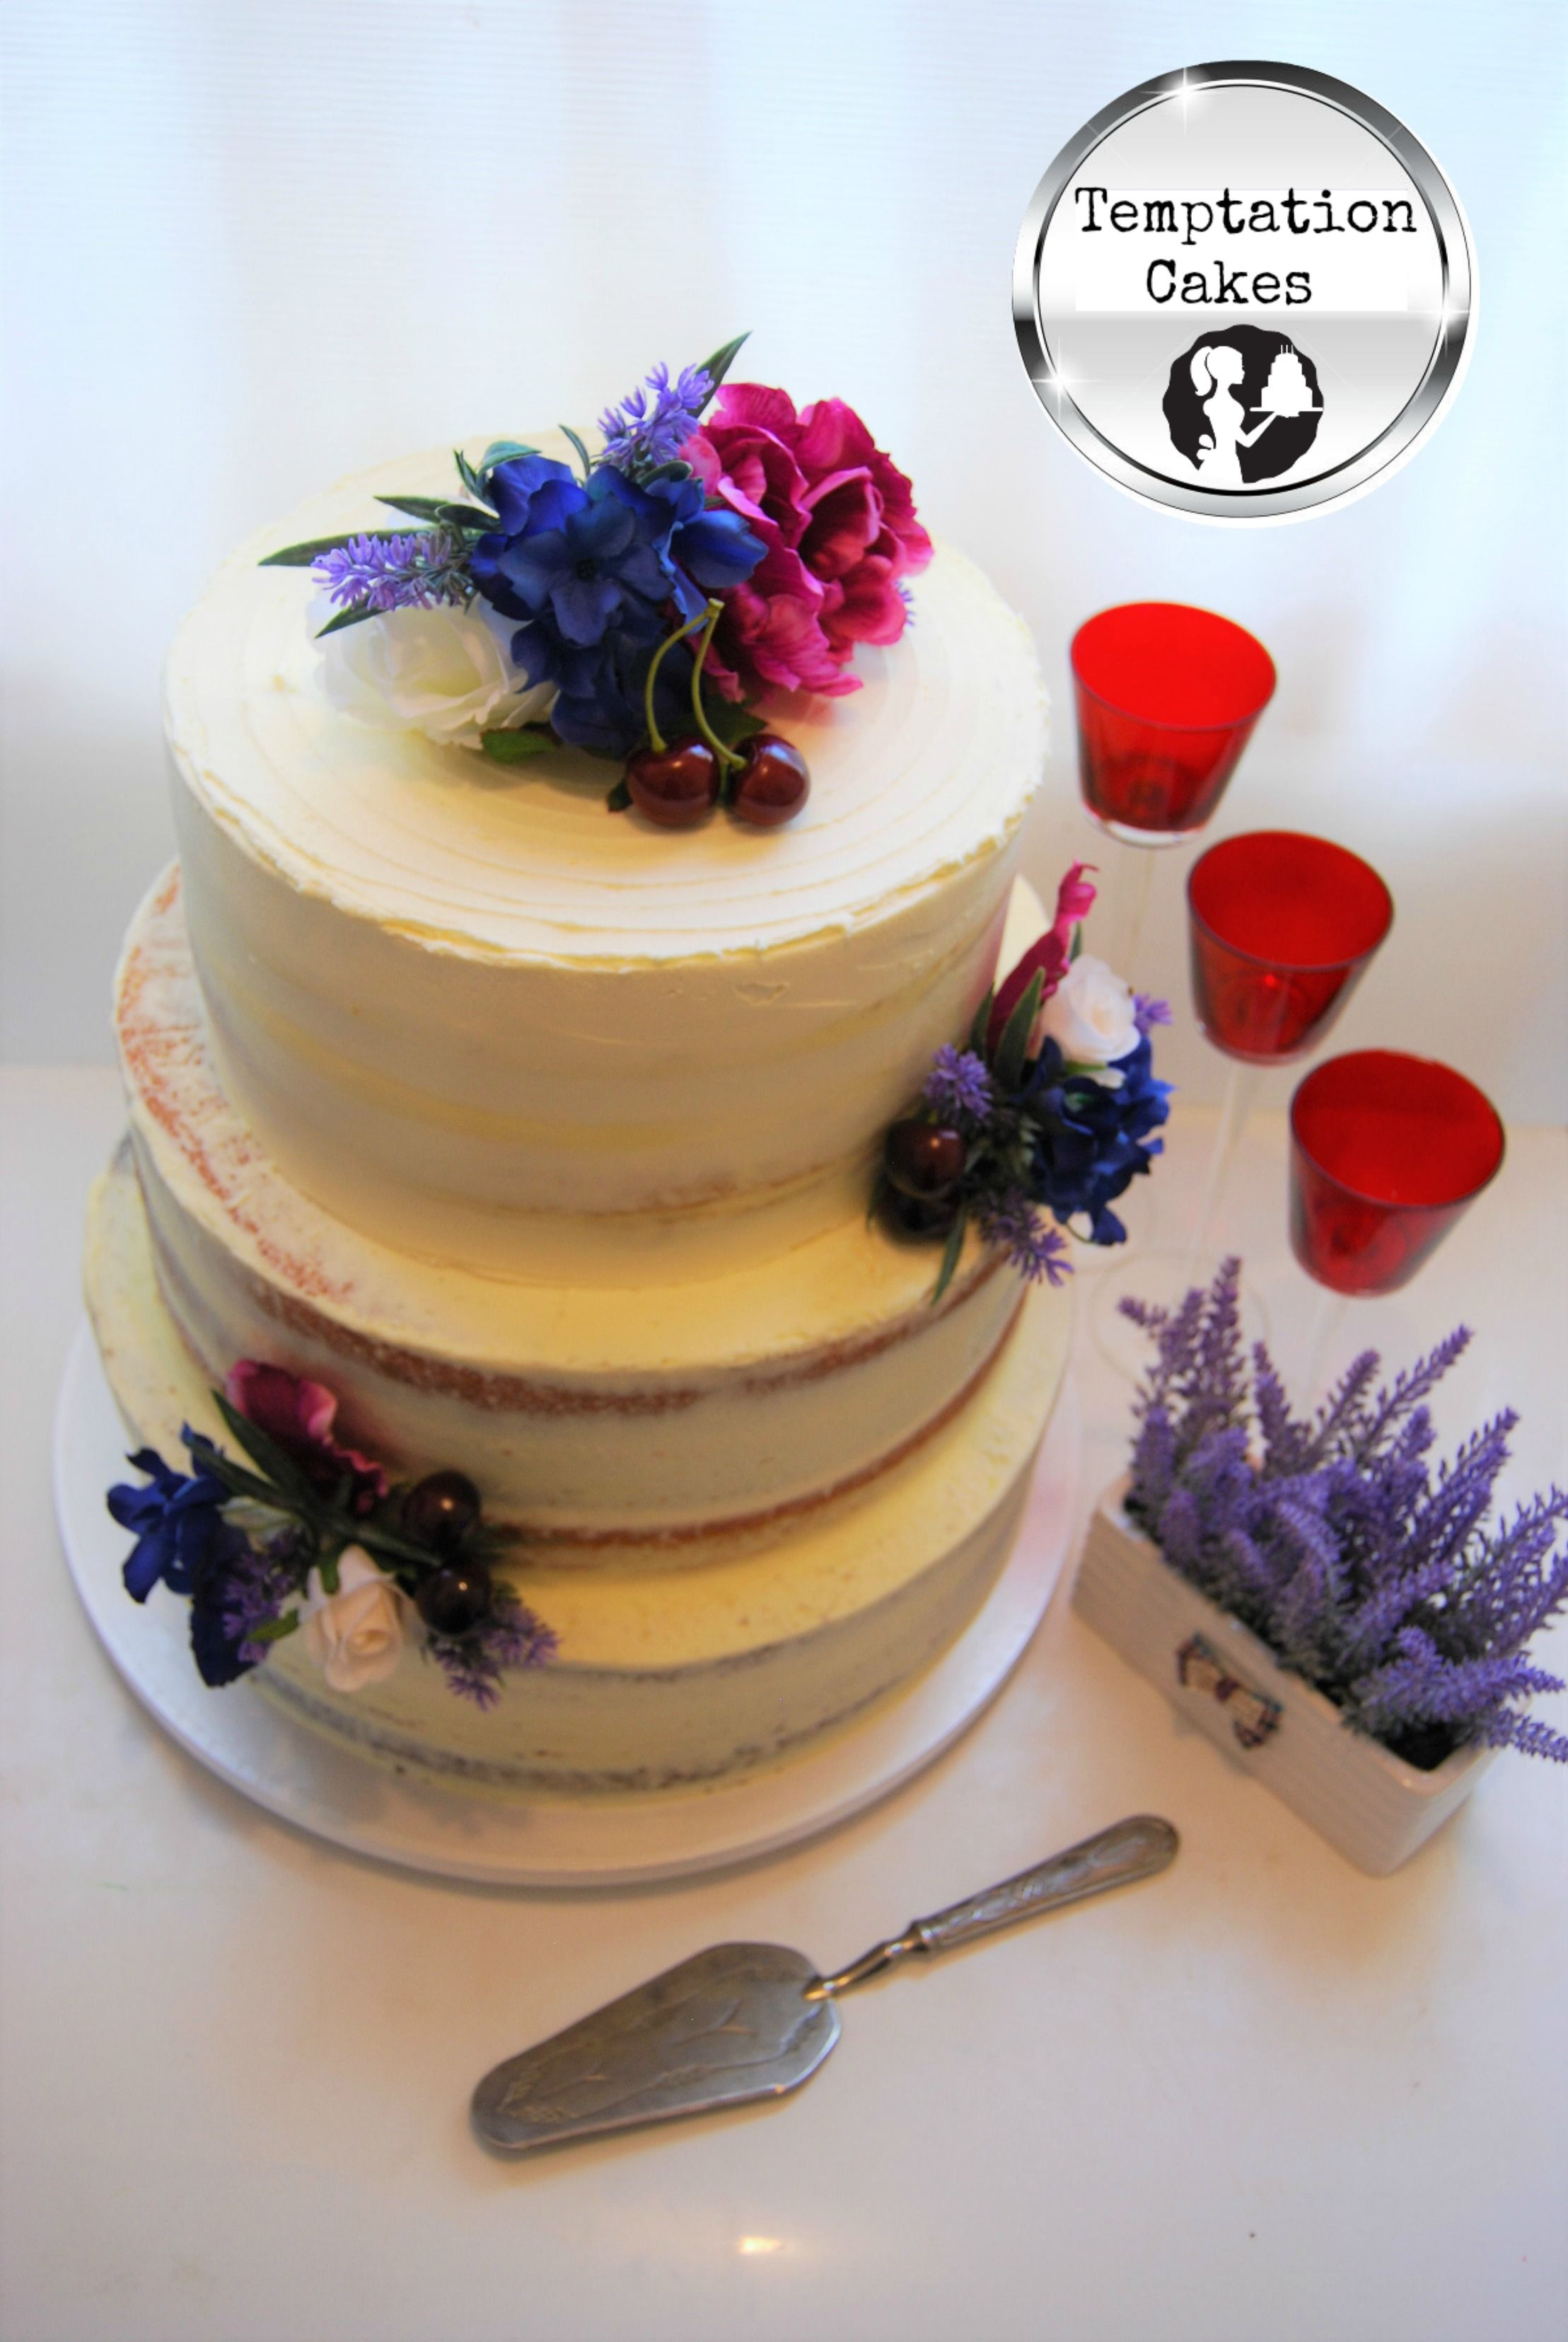 Semi Naked Wedding Cake Auckland 695 Cake Caters For 200 Pax And